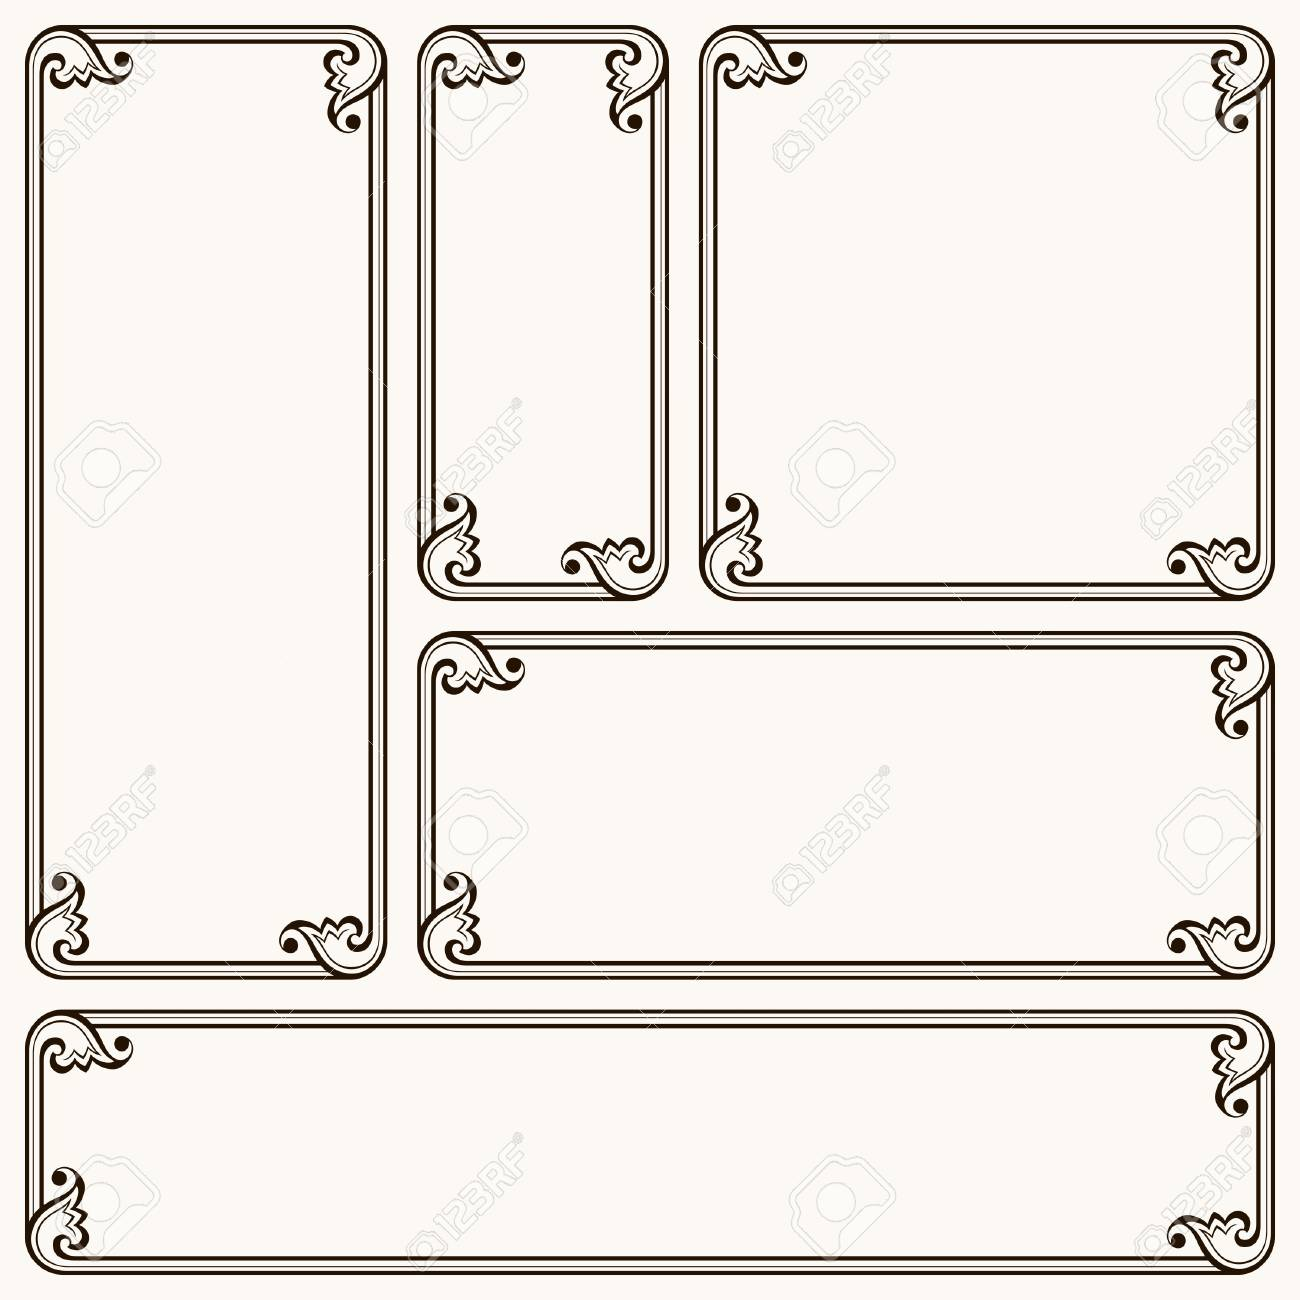 Frames With Decorative Corners In Different Proportions Royalty Free